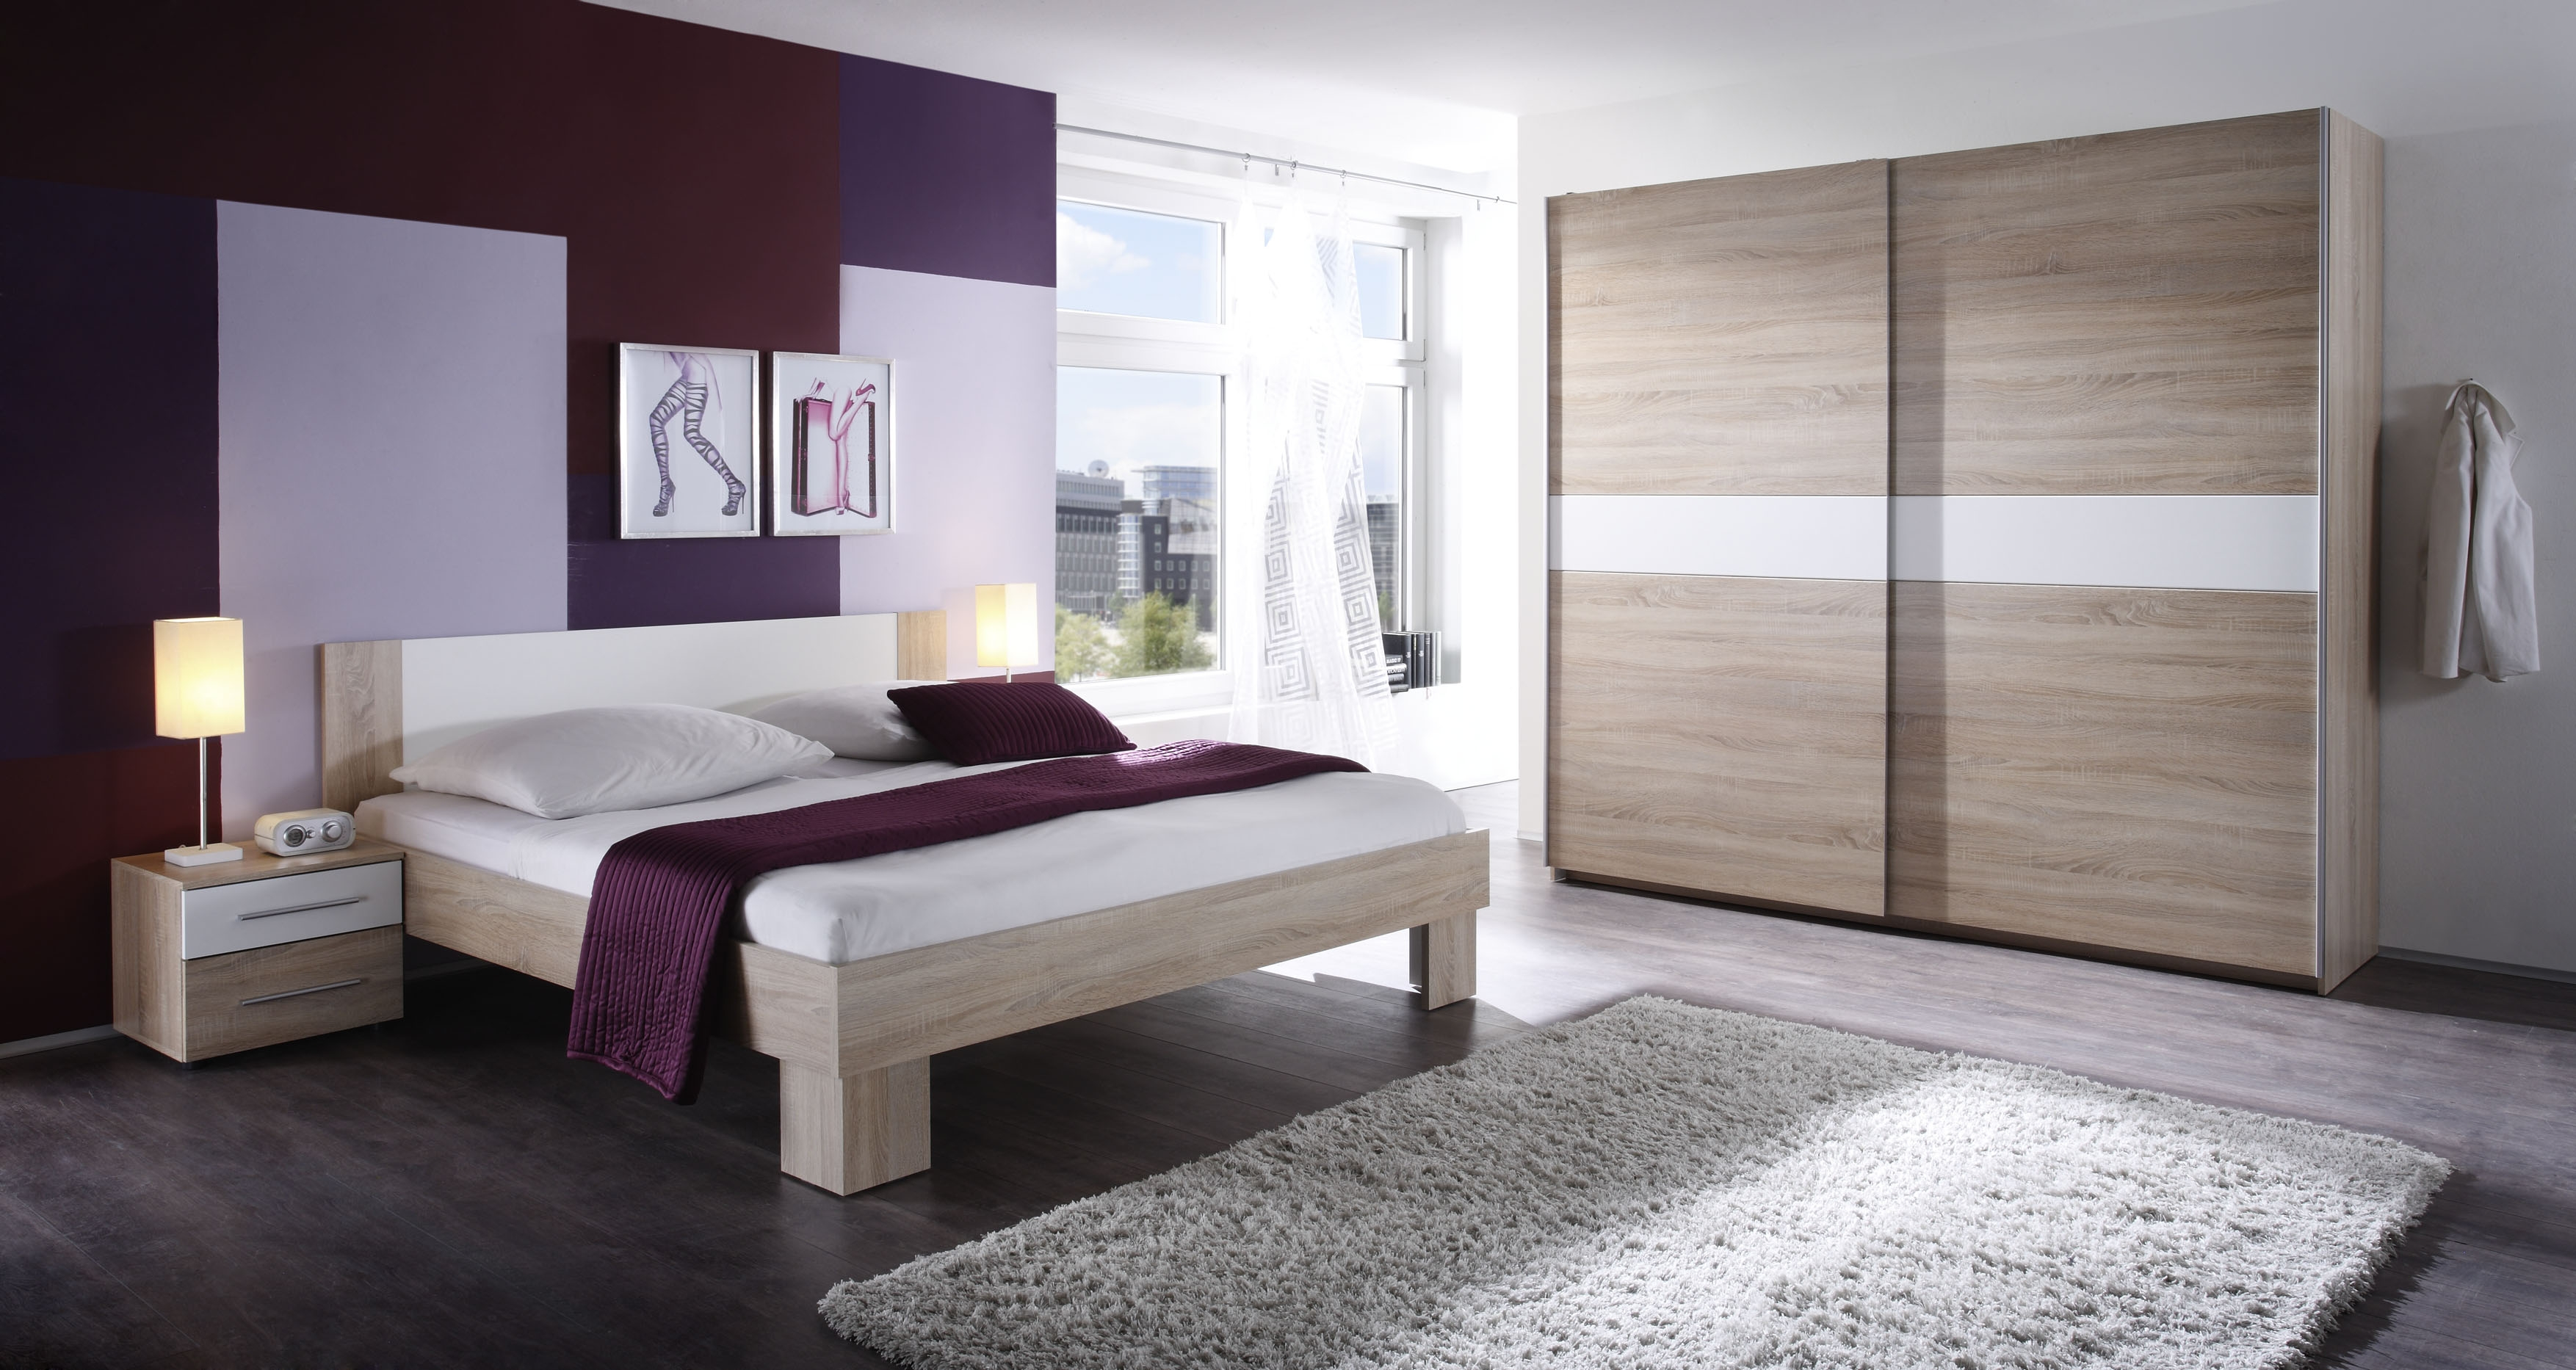 wandfarben gestaltungsideen alles ber wohndesign und. Black Bedroom Furniture Sets. Home Design Ideas